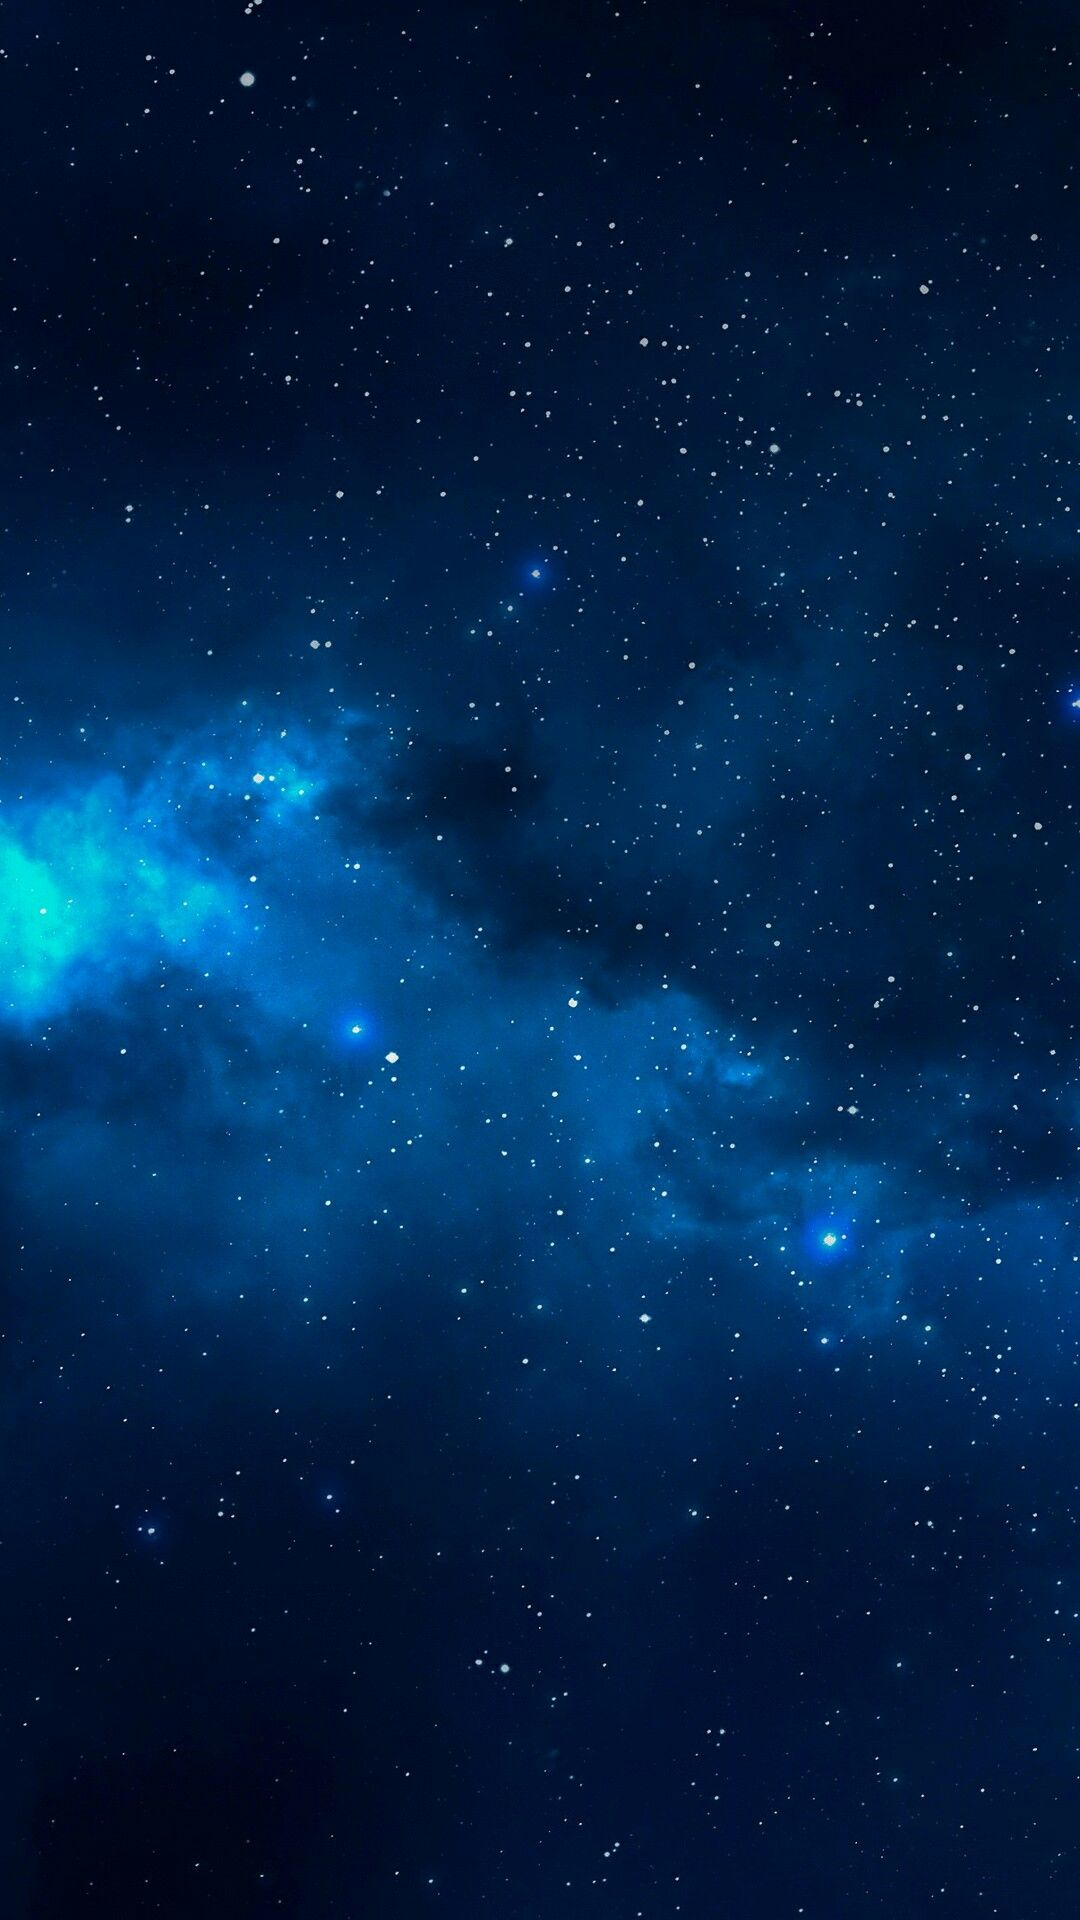 Pin By Malanie Camden Mandeville On Wallpapers Backgrounds Space Phone Wallpaper Blue Galaxy Wallpaper Galaxy Wallpaper